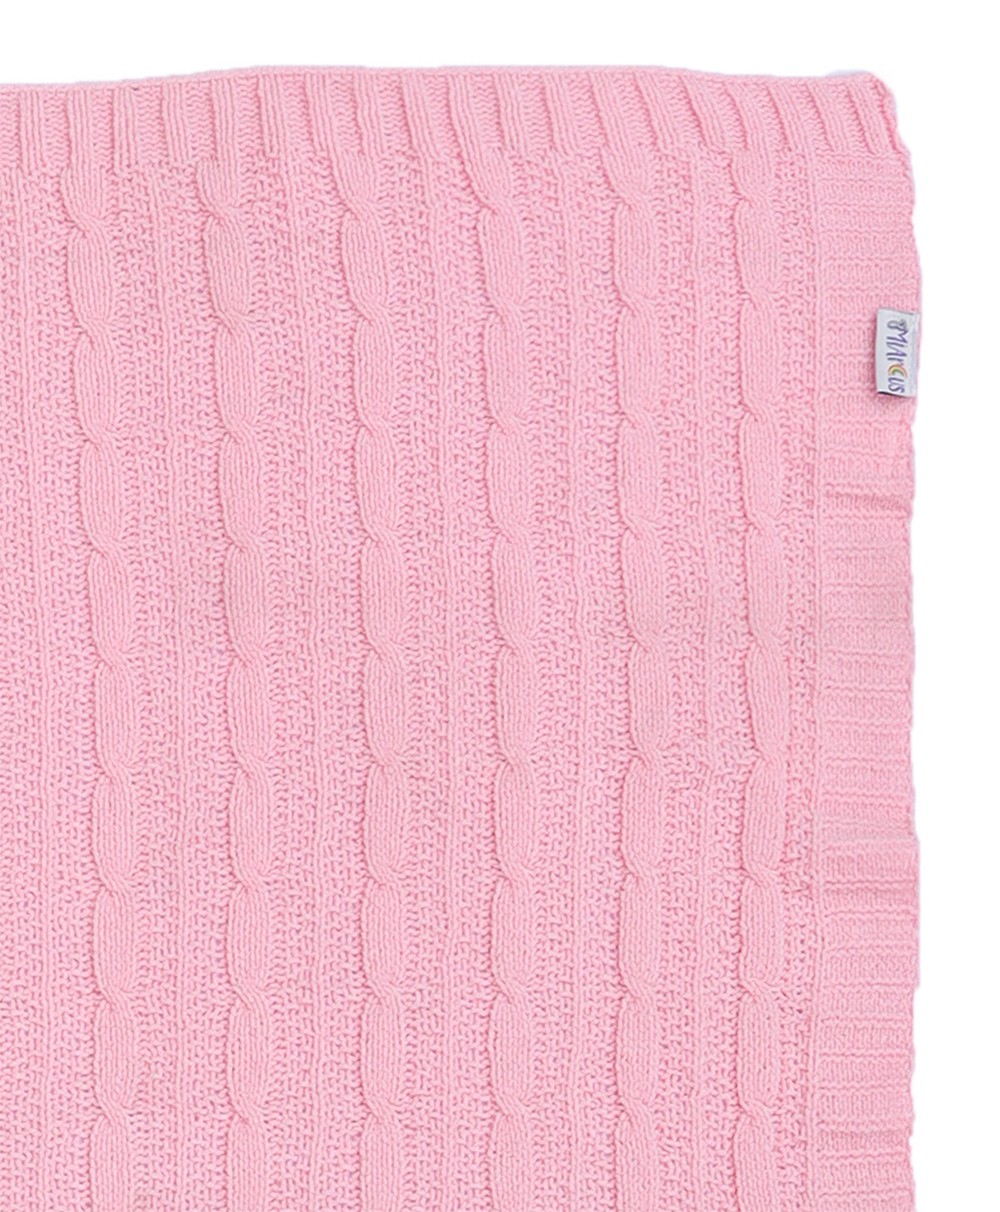 Chenille Cozy Blanket - Pink